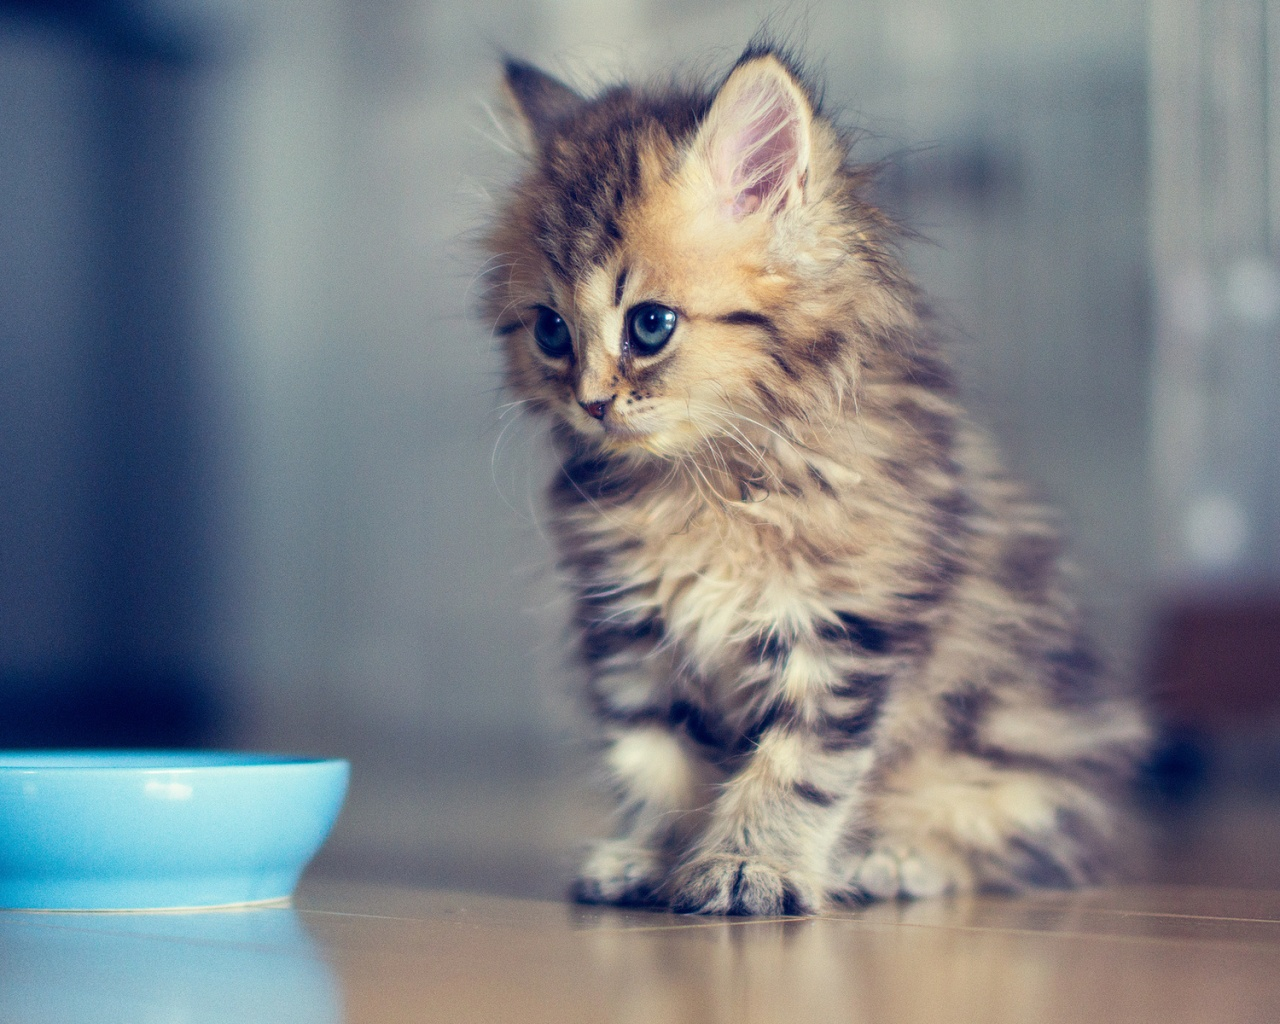 Top 10 cutest kitten GIFs EVER! Yes, we just opened Pandora's box...